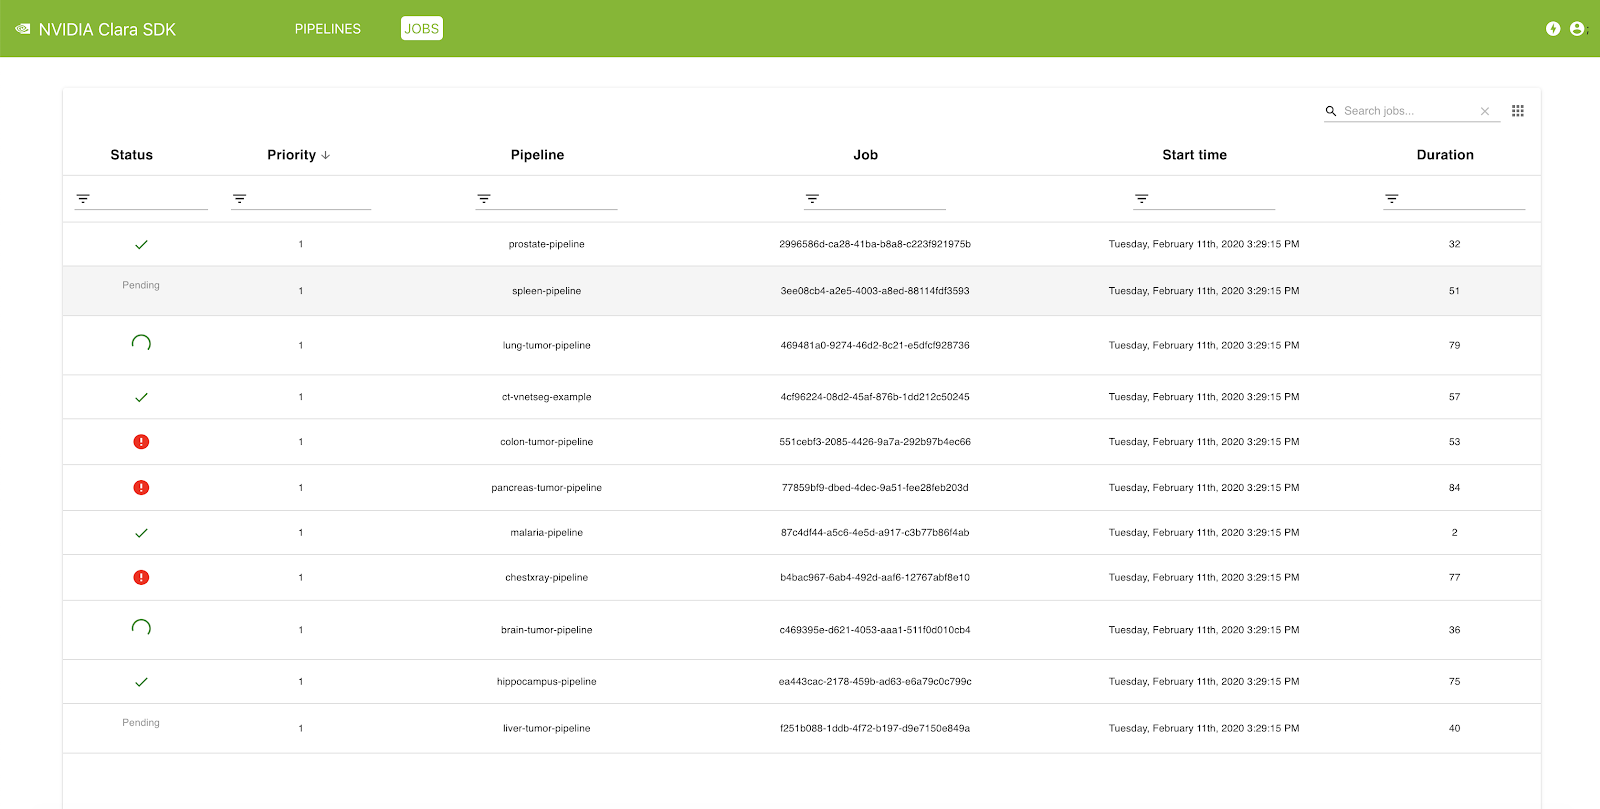 A screenshot of the Clara Deploy management console, showing details of jobs in the queue, jobs currently processing, and jobs completed.